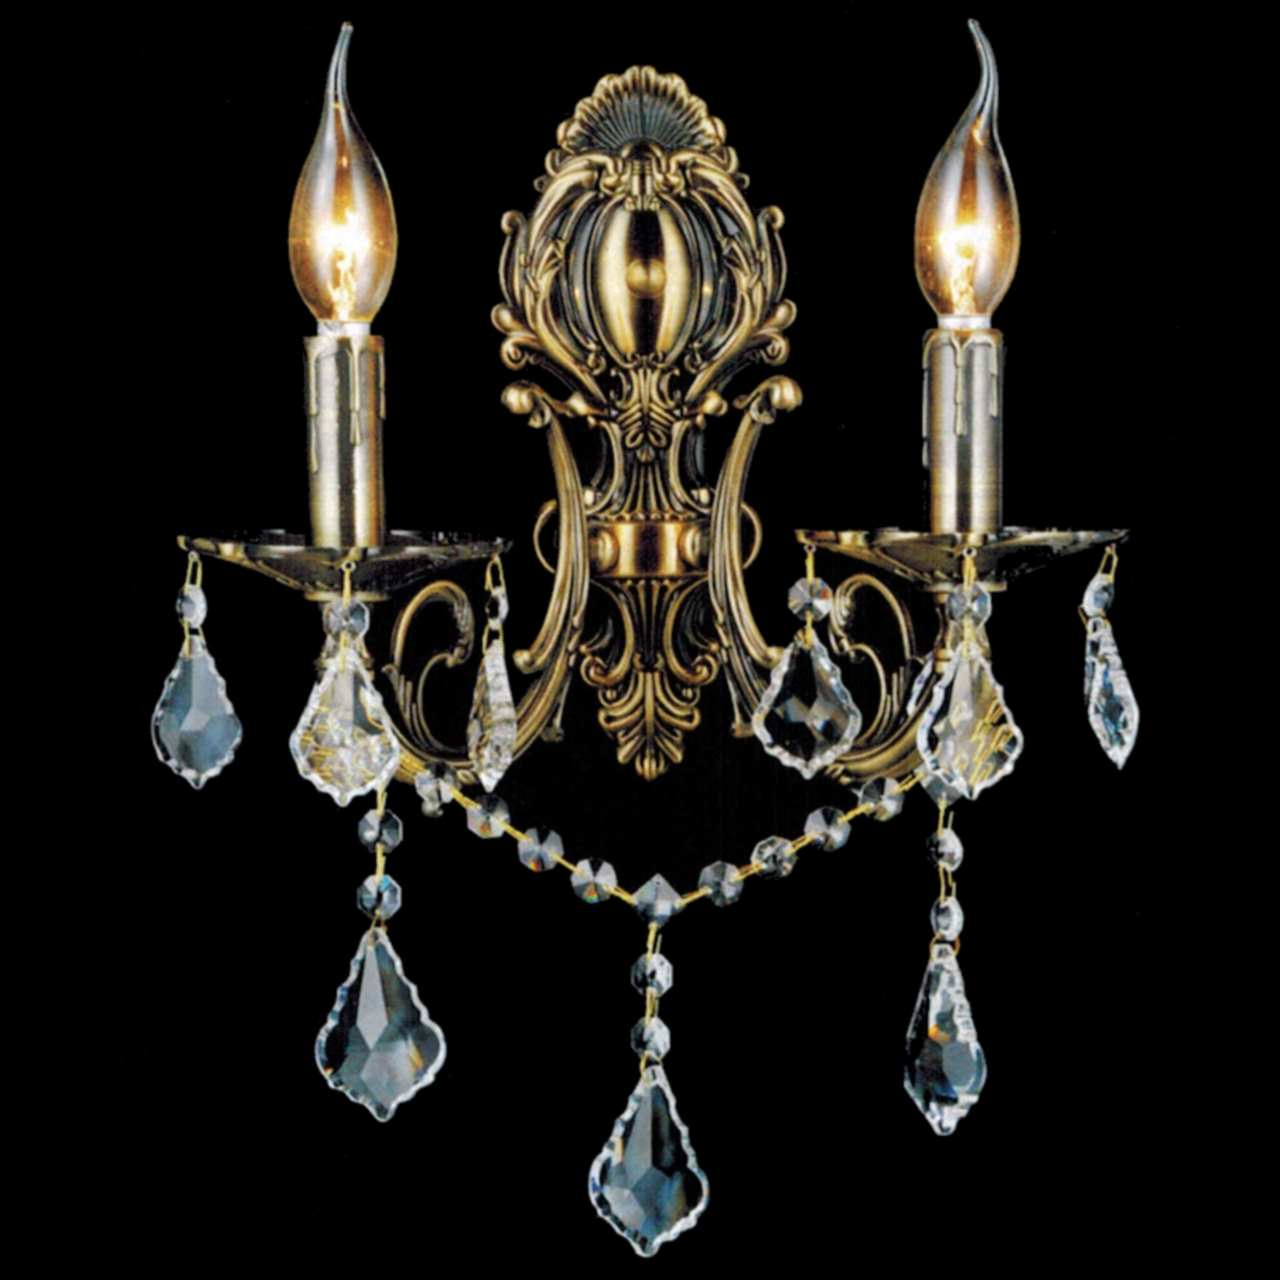 Brizzo lighting stores 16 ottone traditional crystal candle wall picture of 16 ottone traditional crystal candle wall sconce antique brass finish 2 light amipublicfo Gallery